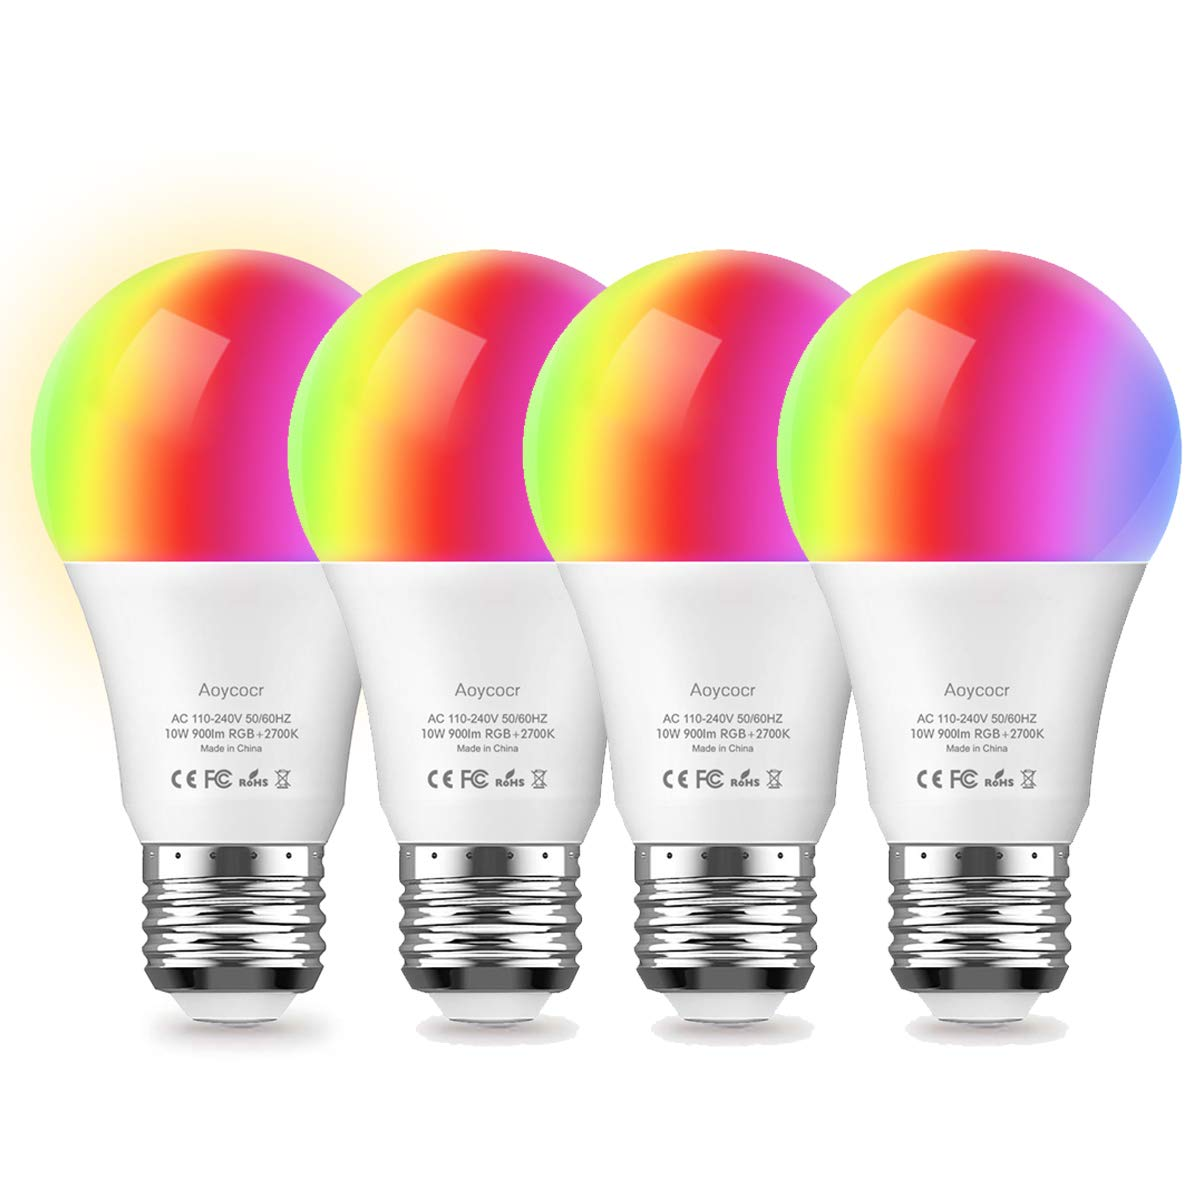 Smart LED Light Bulb, Aoycocr 10W A21 E26 Warm White(2700K) RGB Multicolor, 900 Lumens, 85W Equivalent, Compatible with Amazon Alexa and Google Assistant, No Hub Required (4 Pack)